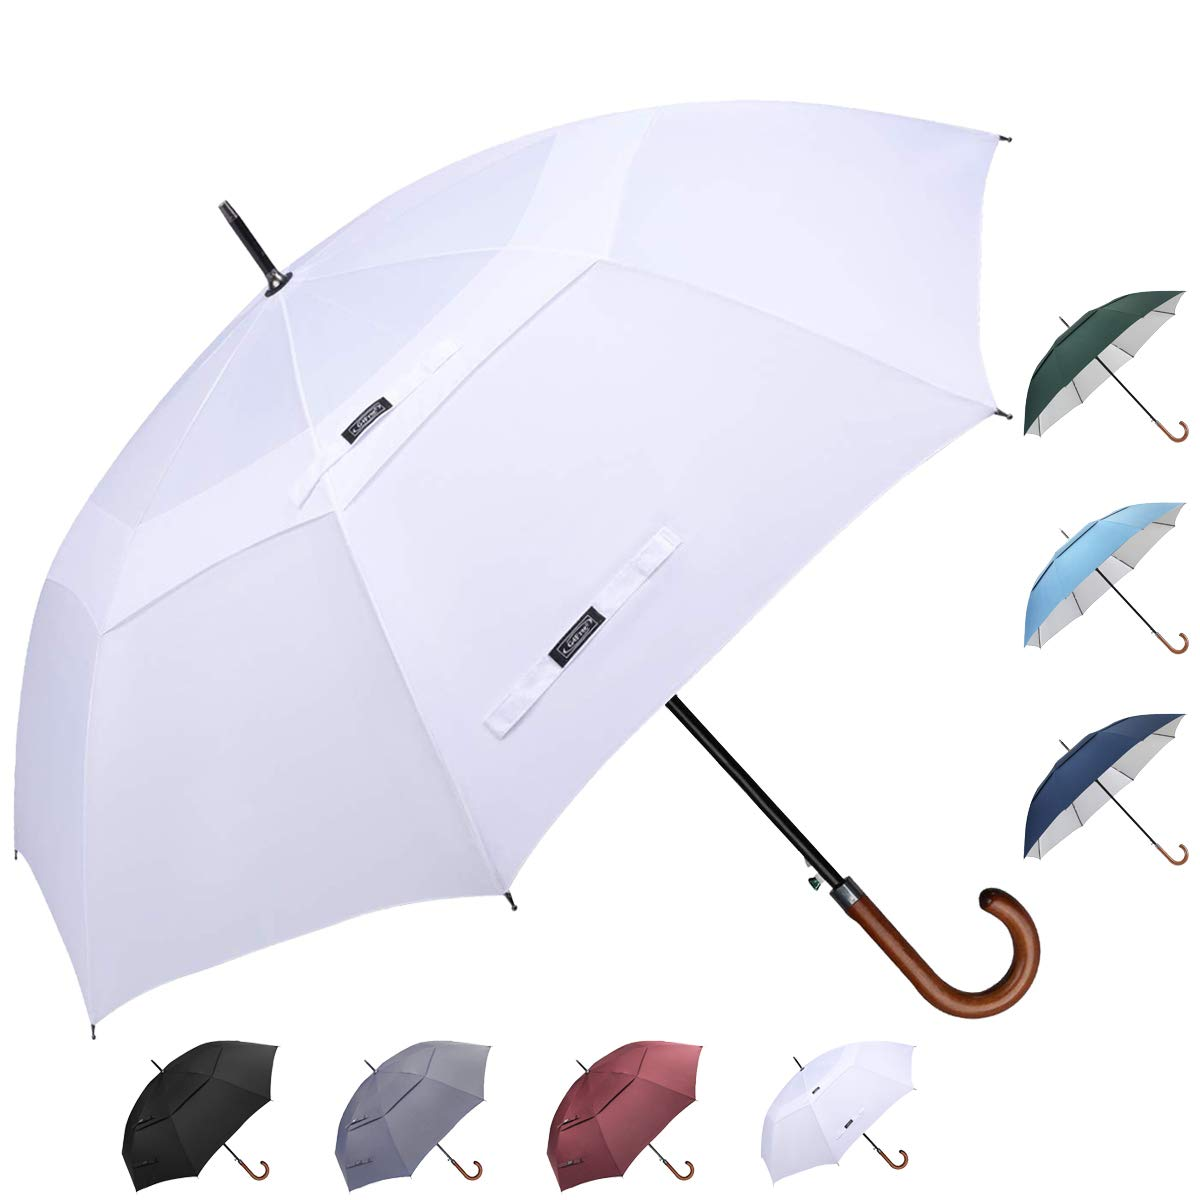 G4Free Wooden J Handle Classic Golf Umbrella Windproof Auto Open 52 inch Large Oversized Double Canopy Vented Rainproof Cane Stick Umbrellas for Men Women (White) by G4Free